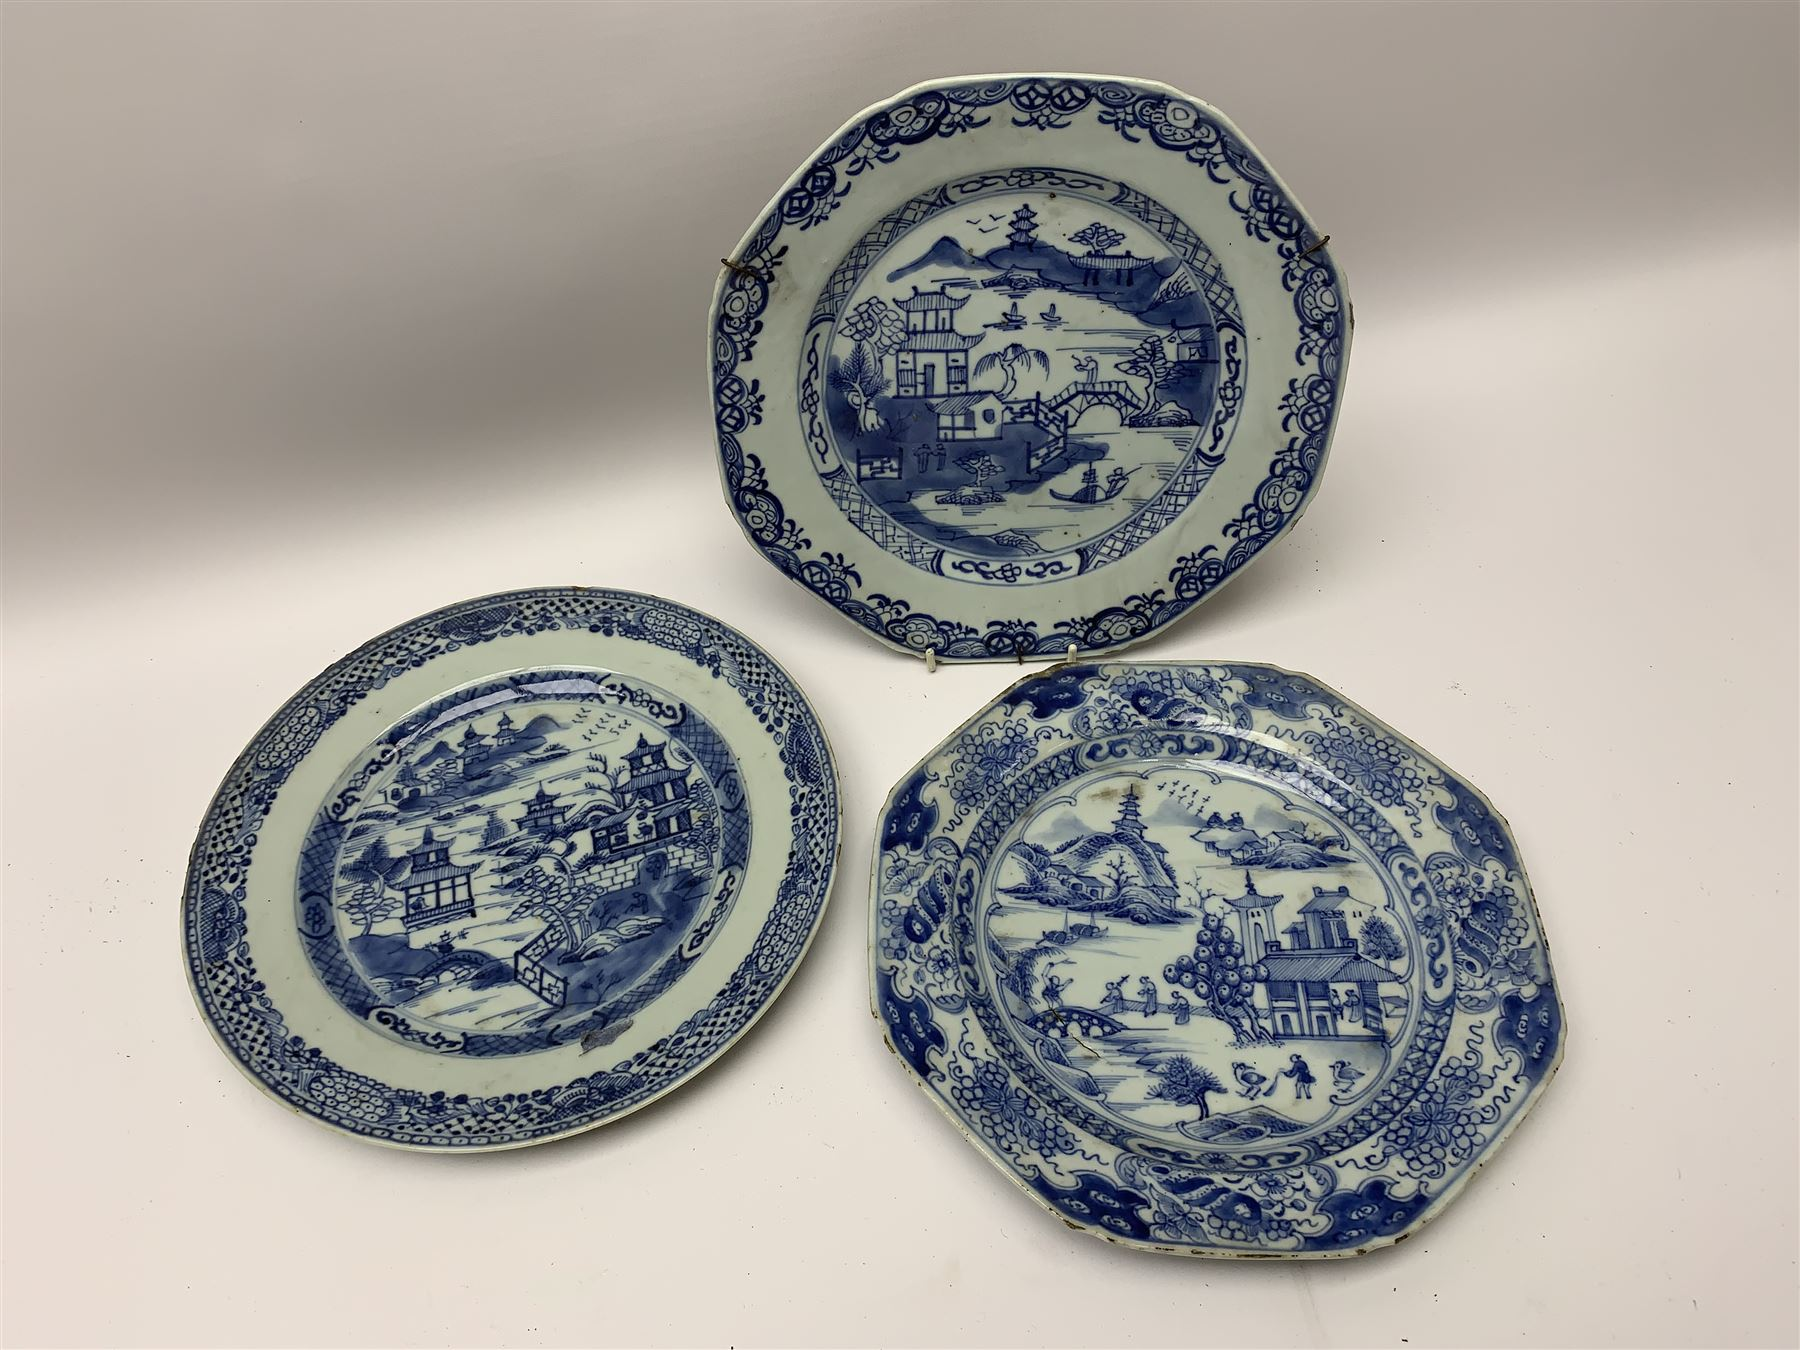 Late 18th/early 19th century Chinese export blue and white porcelain - Image 5 of 5